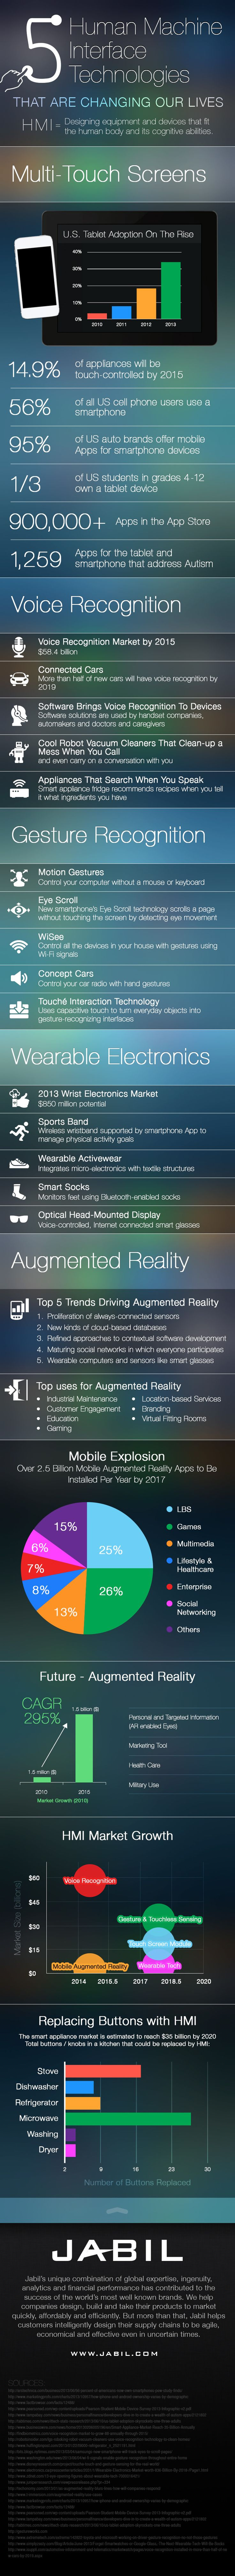 From our smartphones to our cars and even in our homes, human machine interfaces are changing our relationships with technology – and our lives. Beyond touch, our devices now understand our gestures and respond to our voice.  Here are five important human machine interface technologies finding their way into our daily lives.